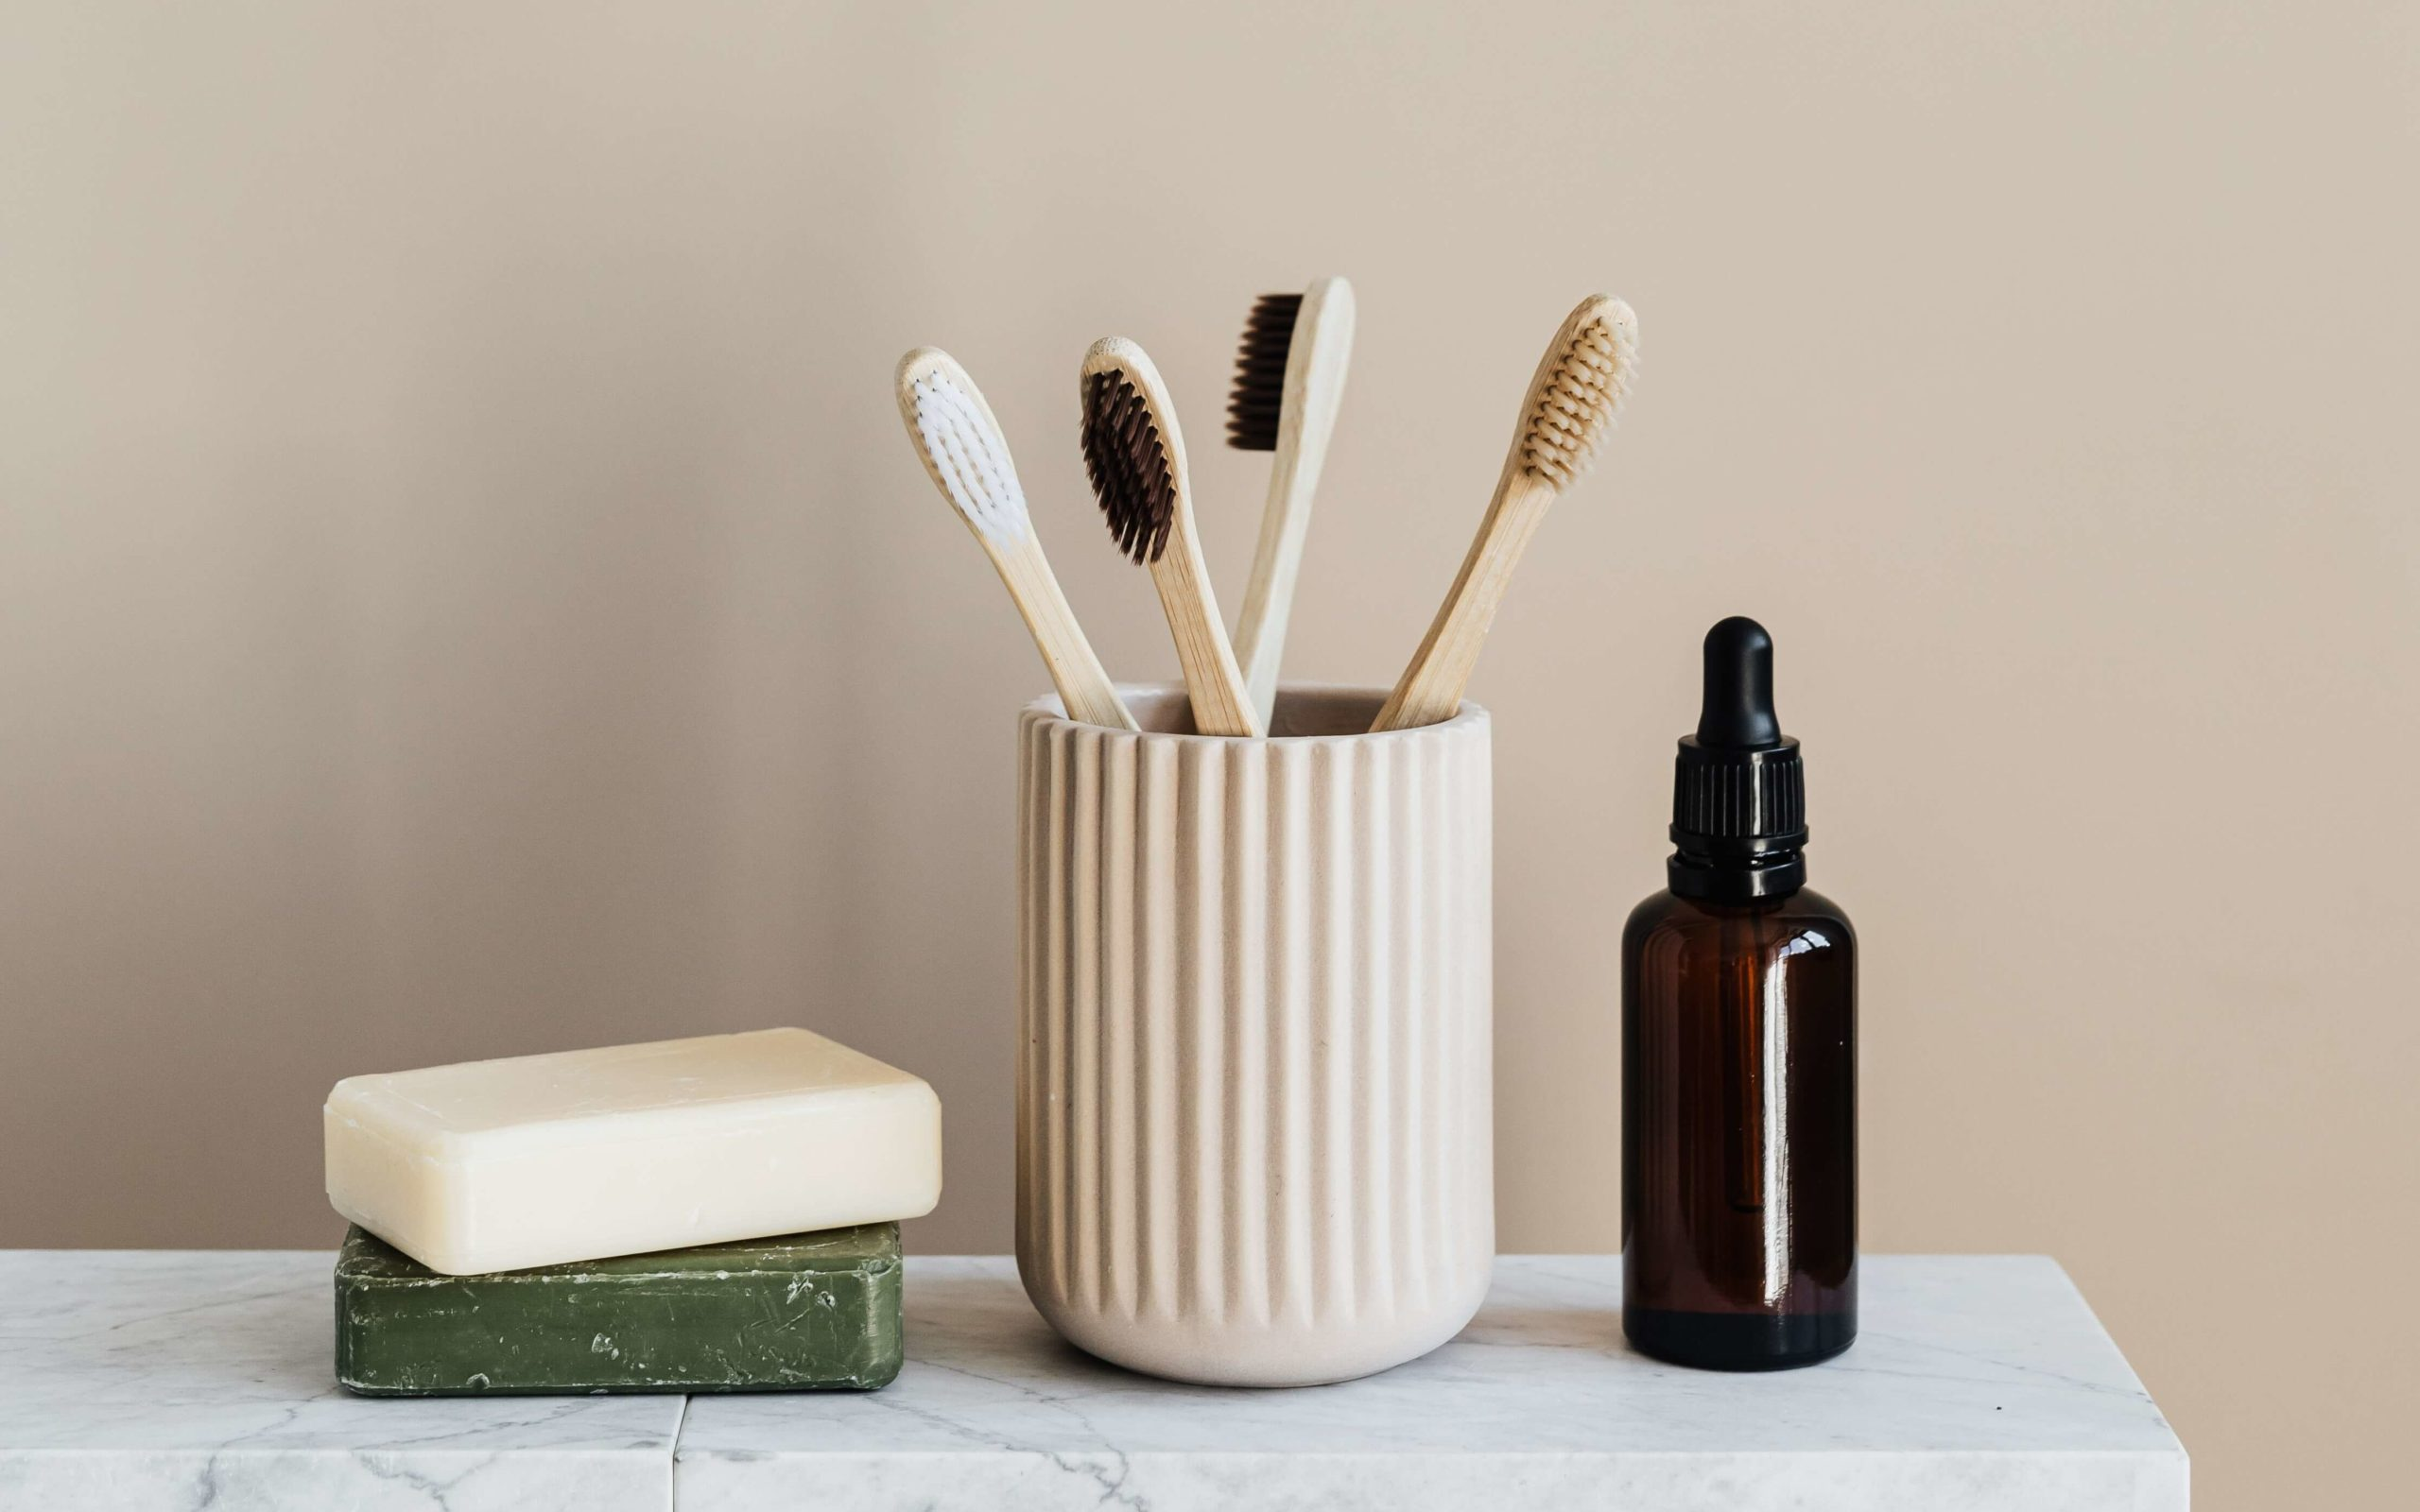 soap, bamboo toothbrushes, and bamboo skincare product